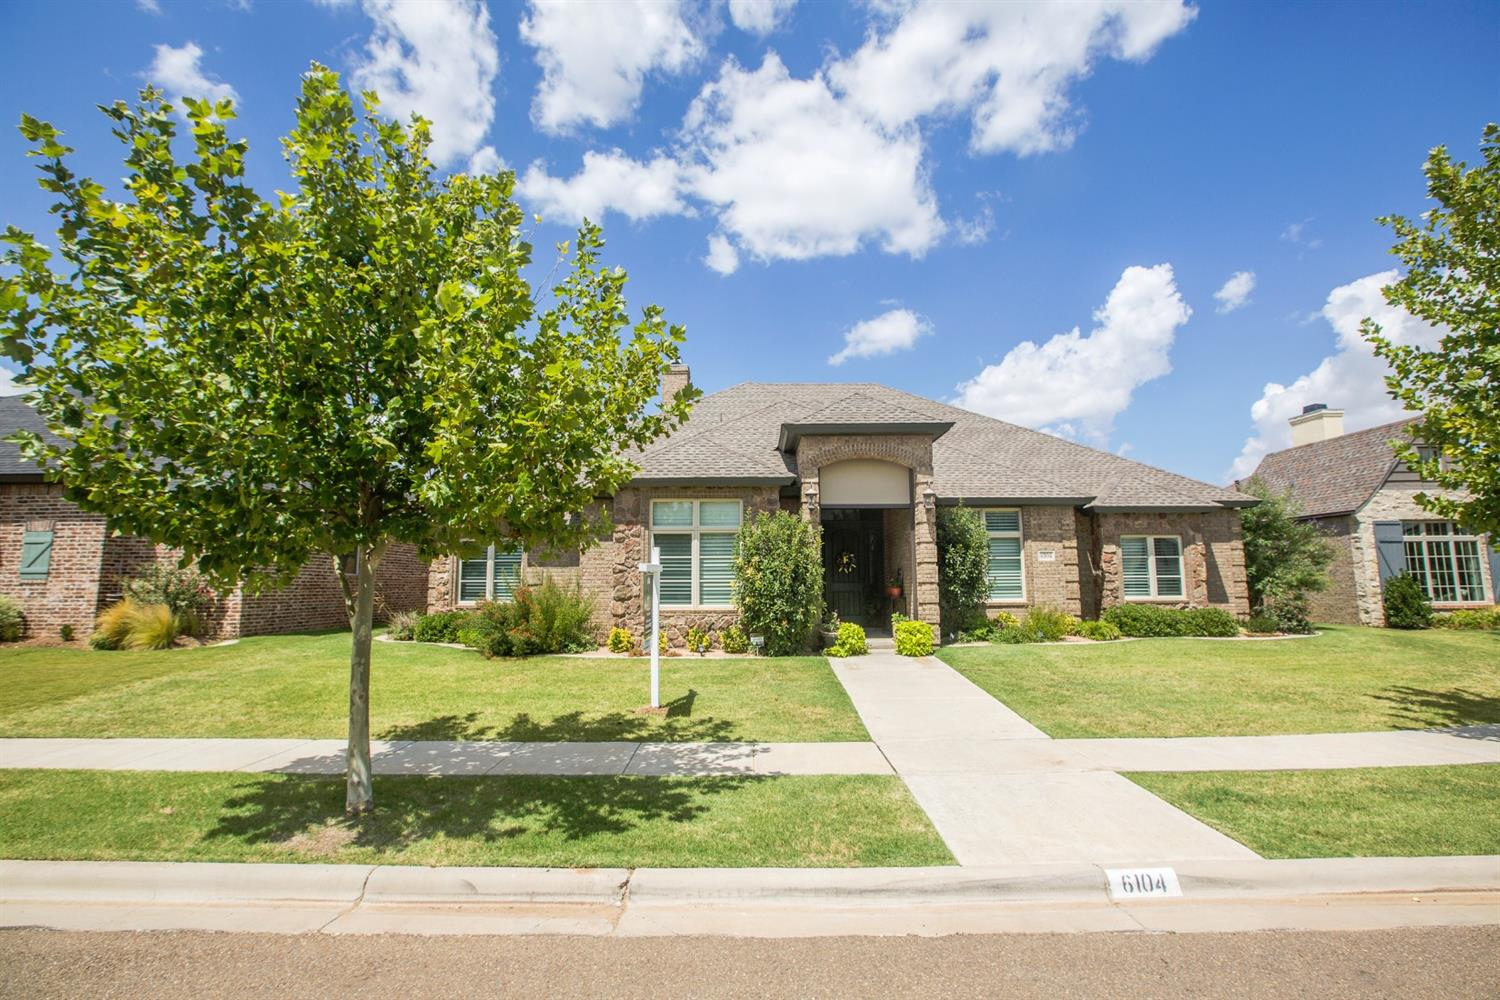 6104 91st Street, Lubbock in Lubbock County, TX 79424 Home for Sale